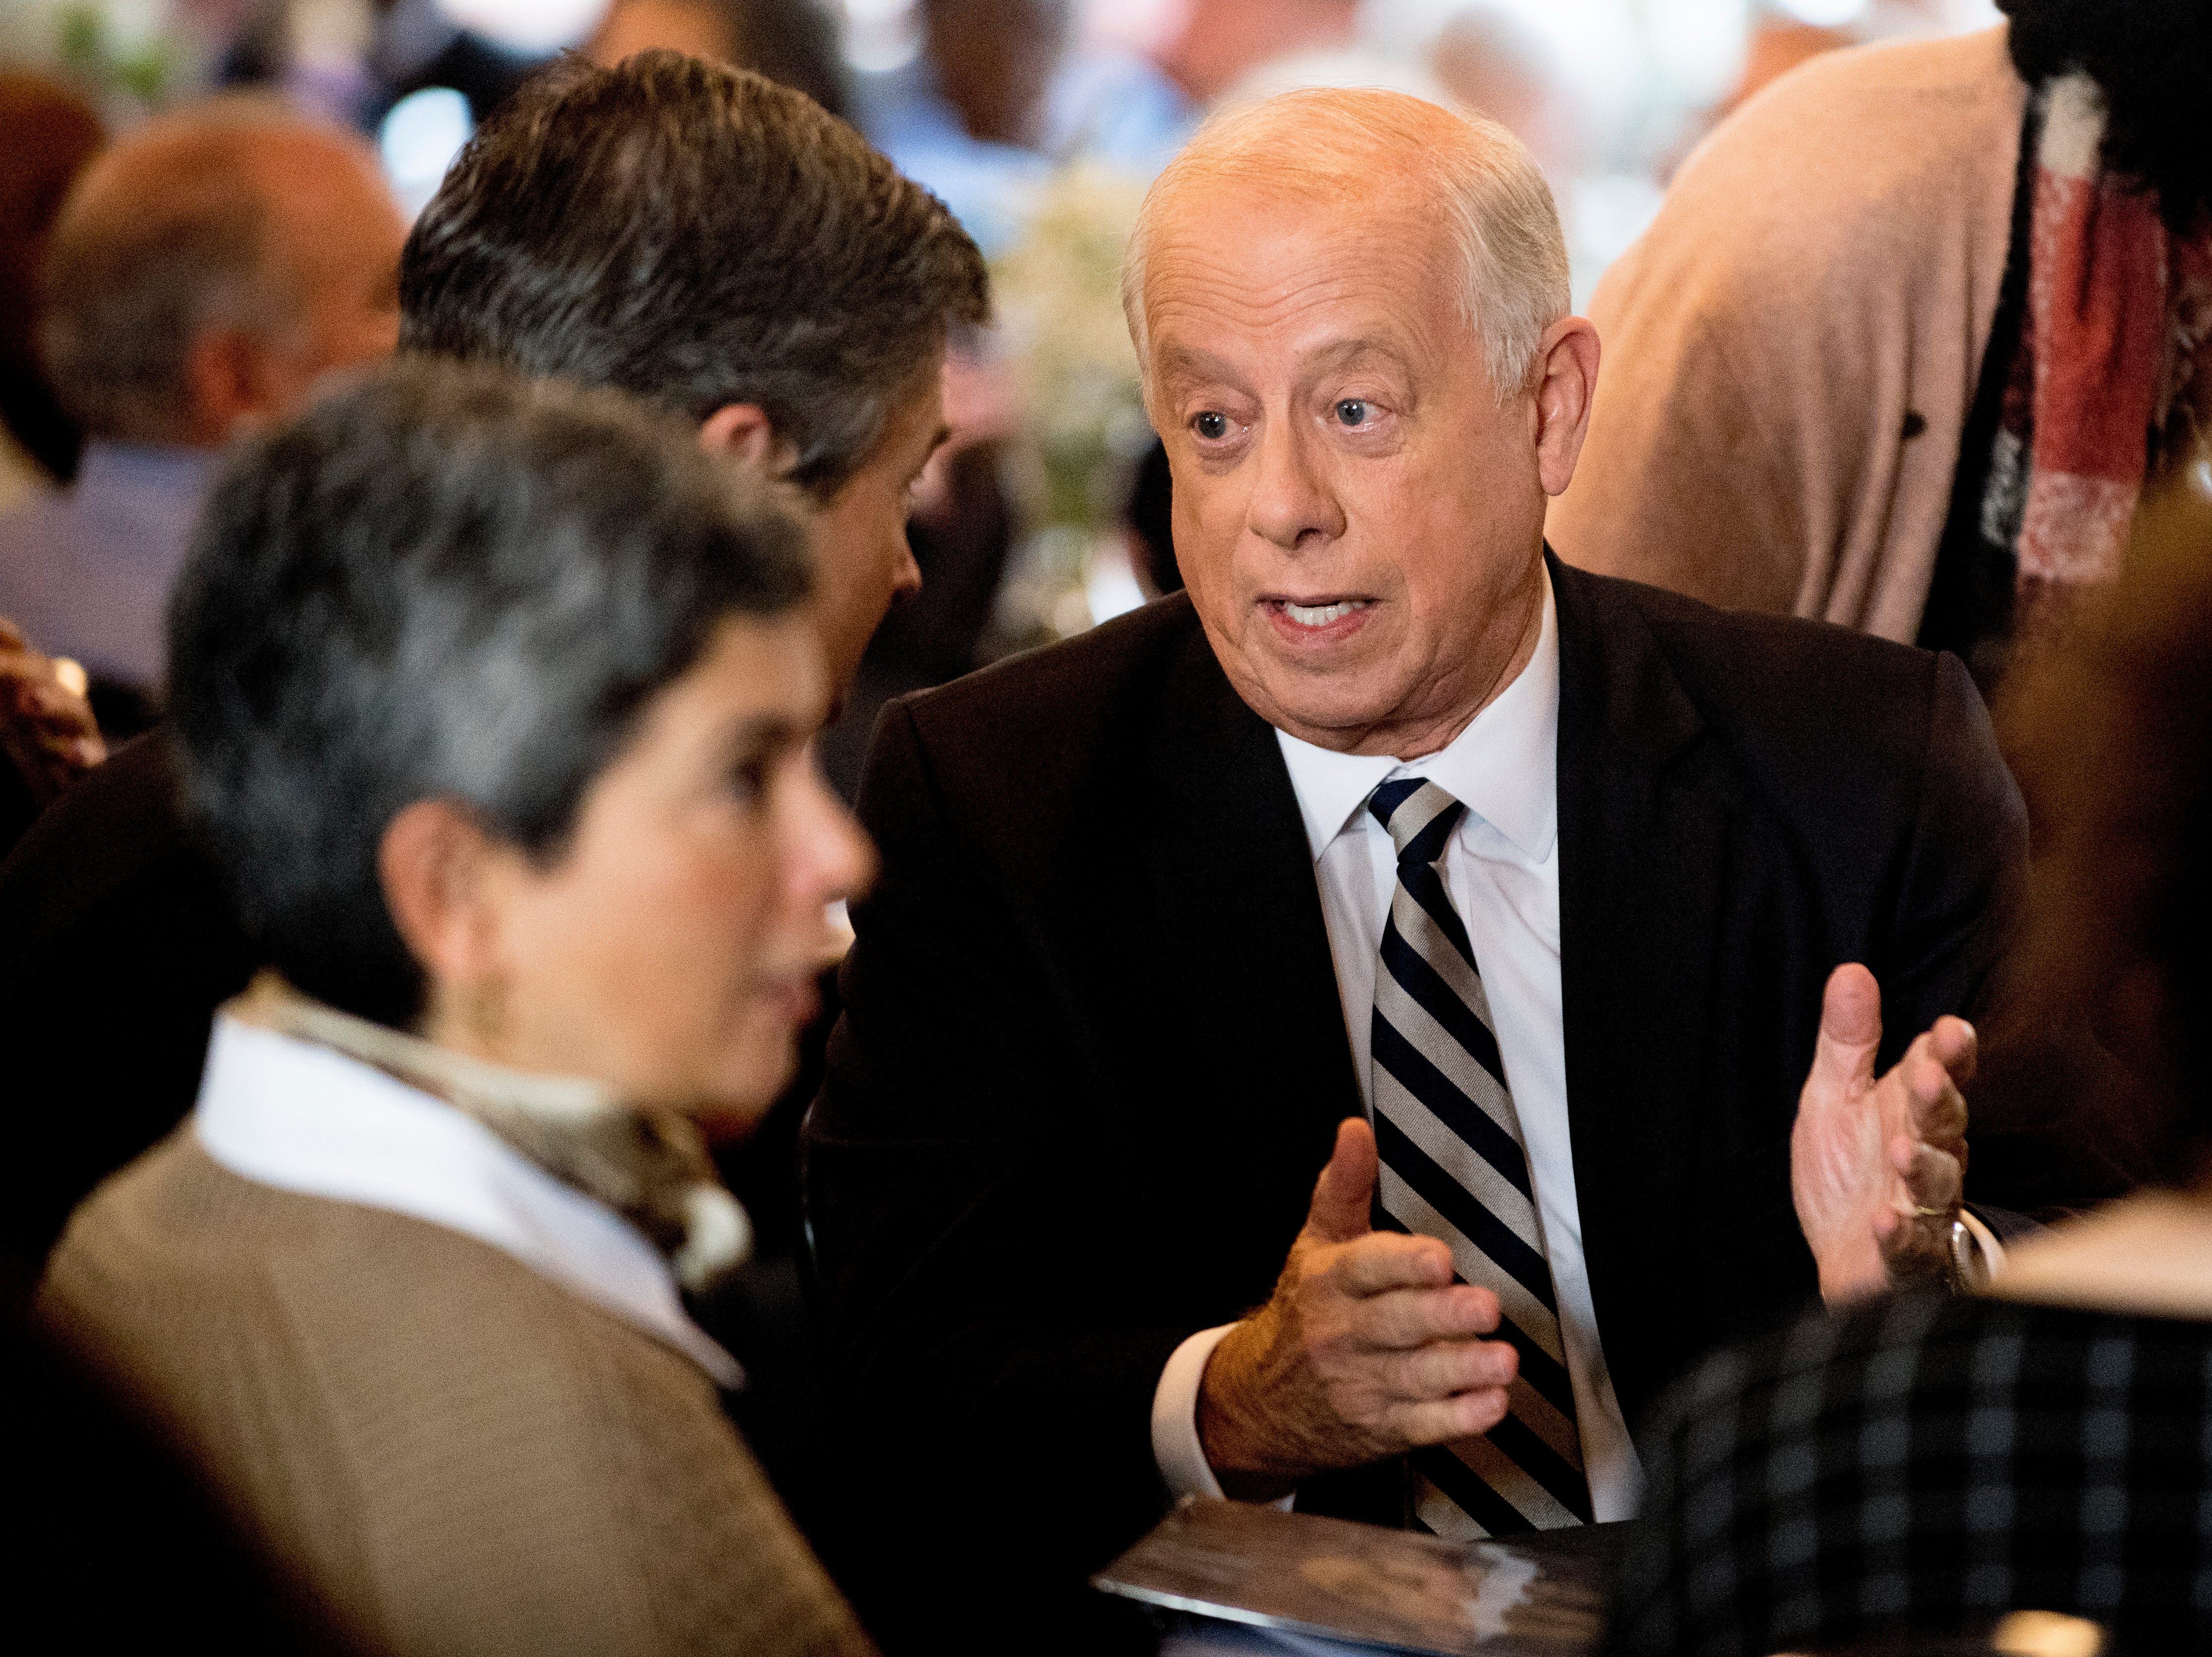 """Former Governor Phil Bredesen chats with Chattanooga Mayor Andy Berke during an """"Doing Better Together"""" Interfaith Lunch at the Bessie Smith Cultural Center in Chattanooga, Tennessee on Sunday, November 4, 2018. Former Governor Phil Bredesen, candidate for U.S. Senate, hosted the event to discuss the future of Tennessee and America."""